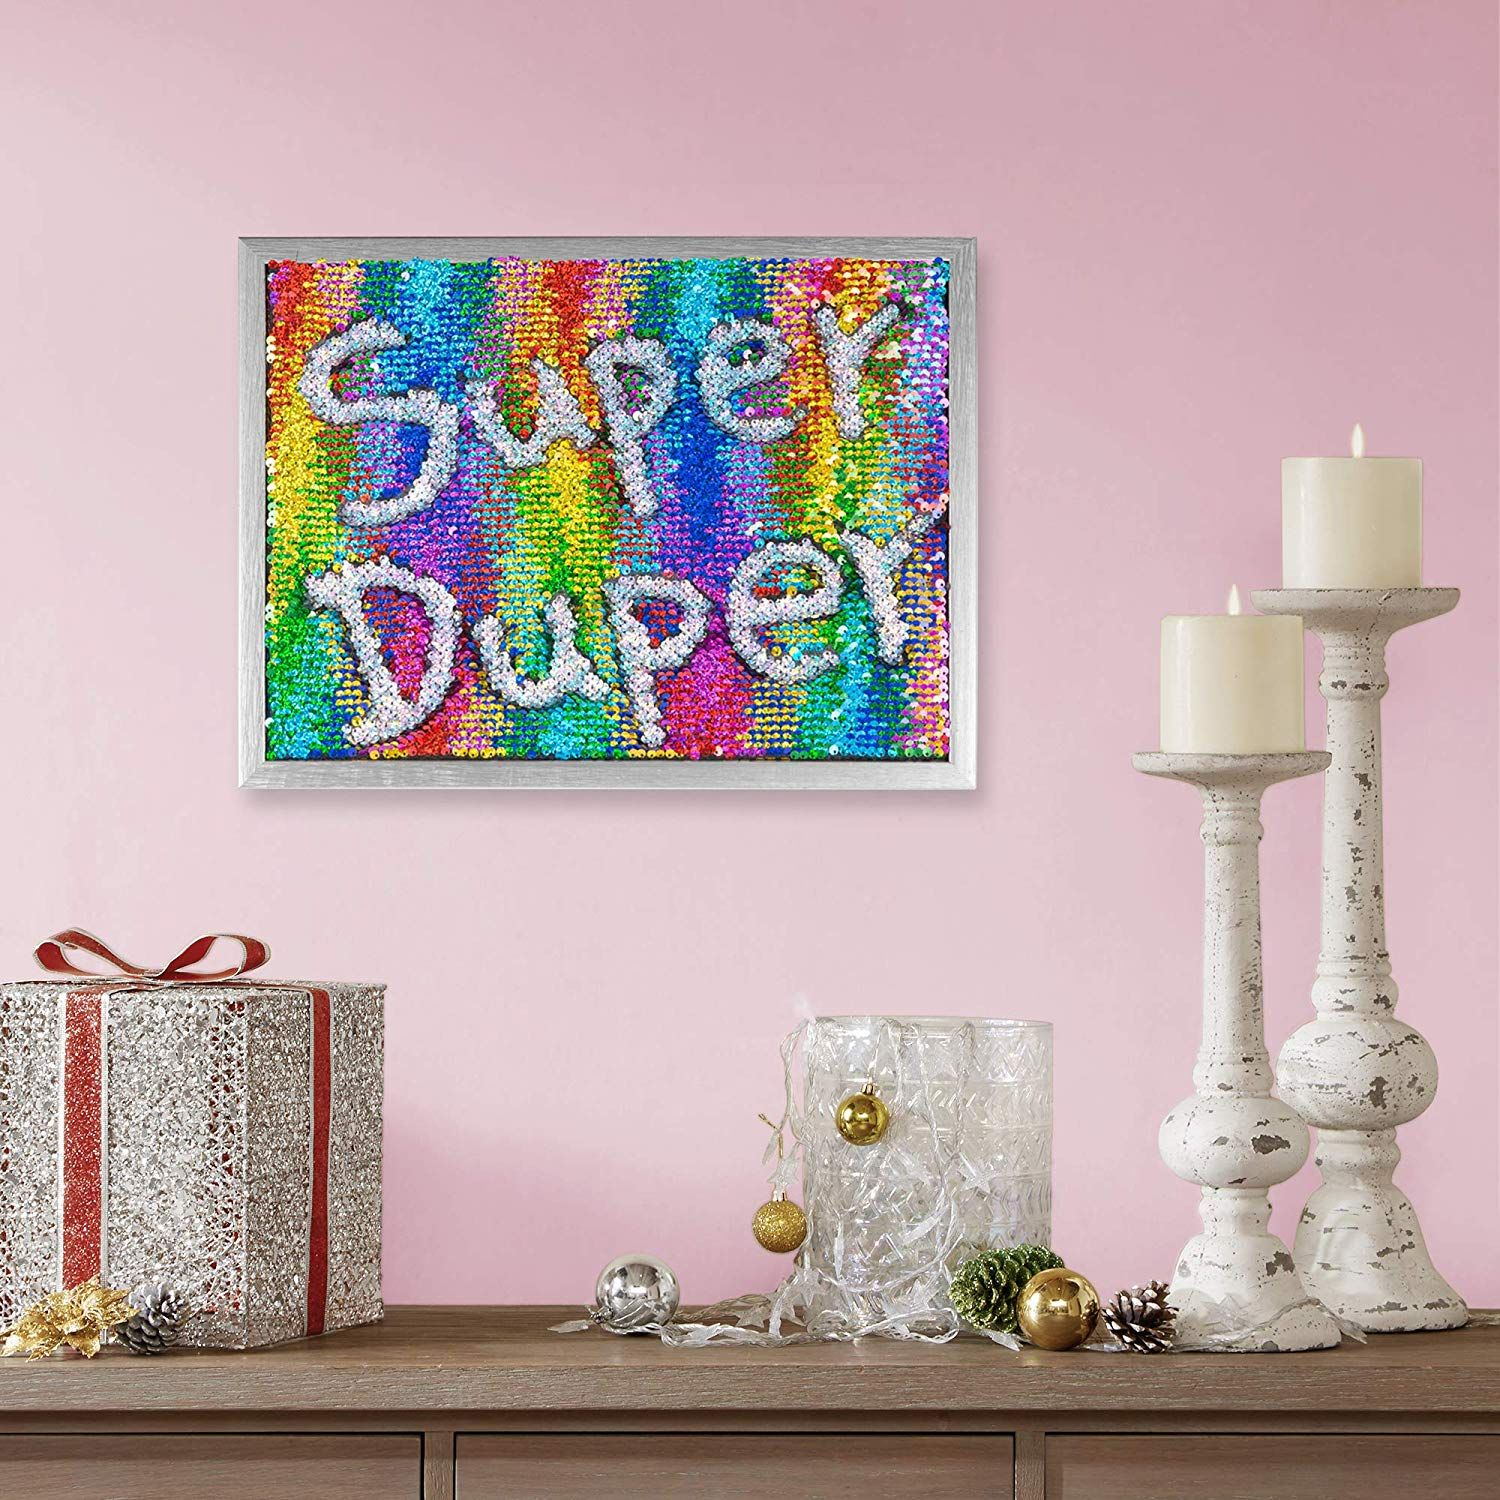 Decor 5 Reversible Mermaid Sensory Sequins Diy Drawing Wall Art 12 X 16 Shiny Rainbow Sequins With Silver Frame Silver Frame Sequins Diy Wall Art